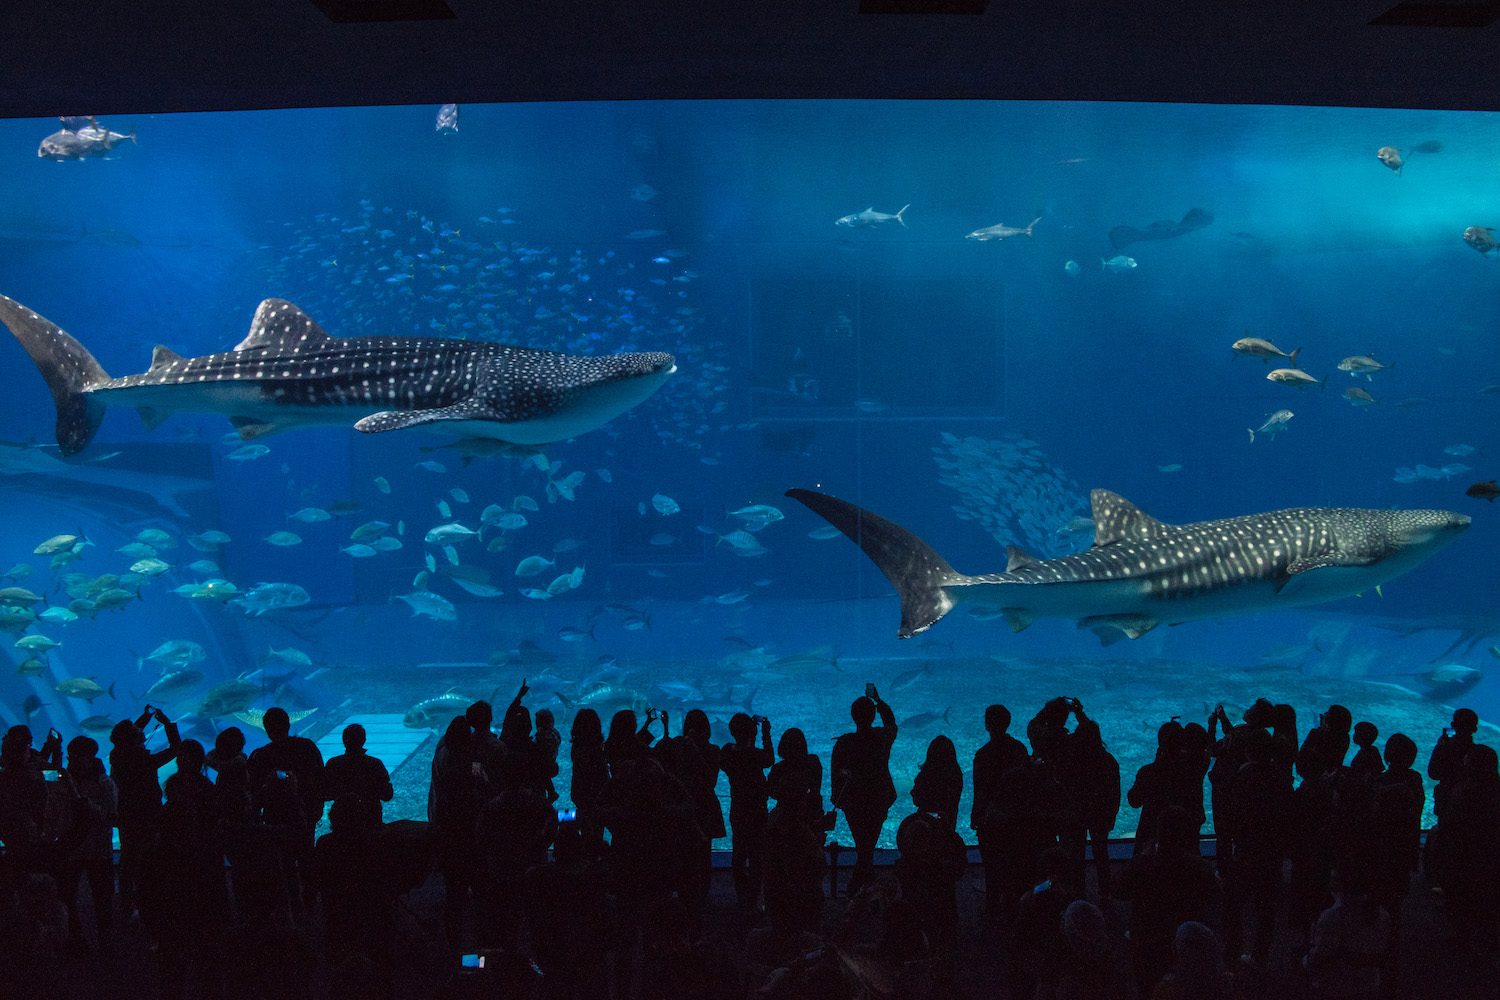 Whale sharks at Churaumi Aquarium in Naha Okinawa